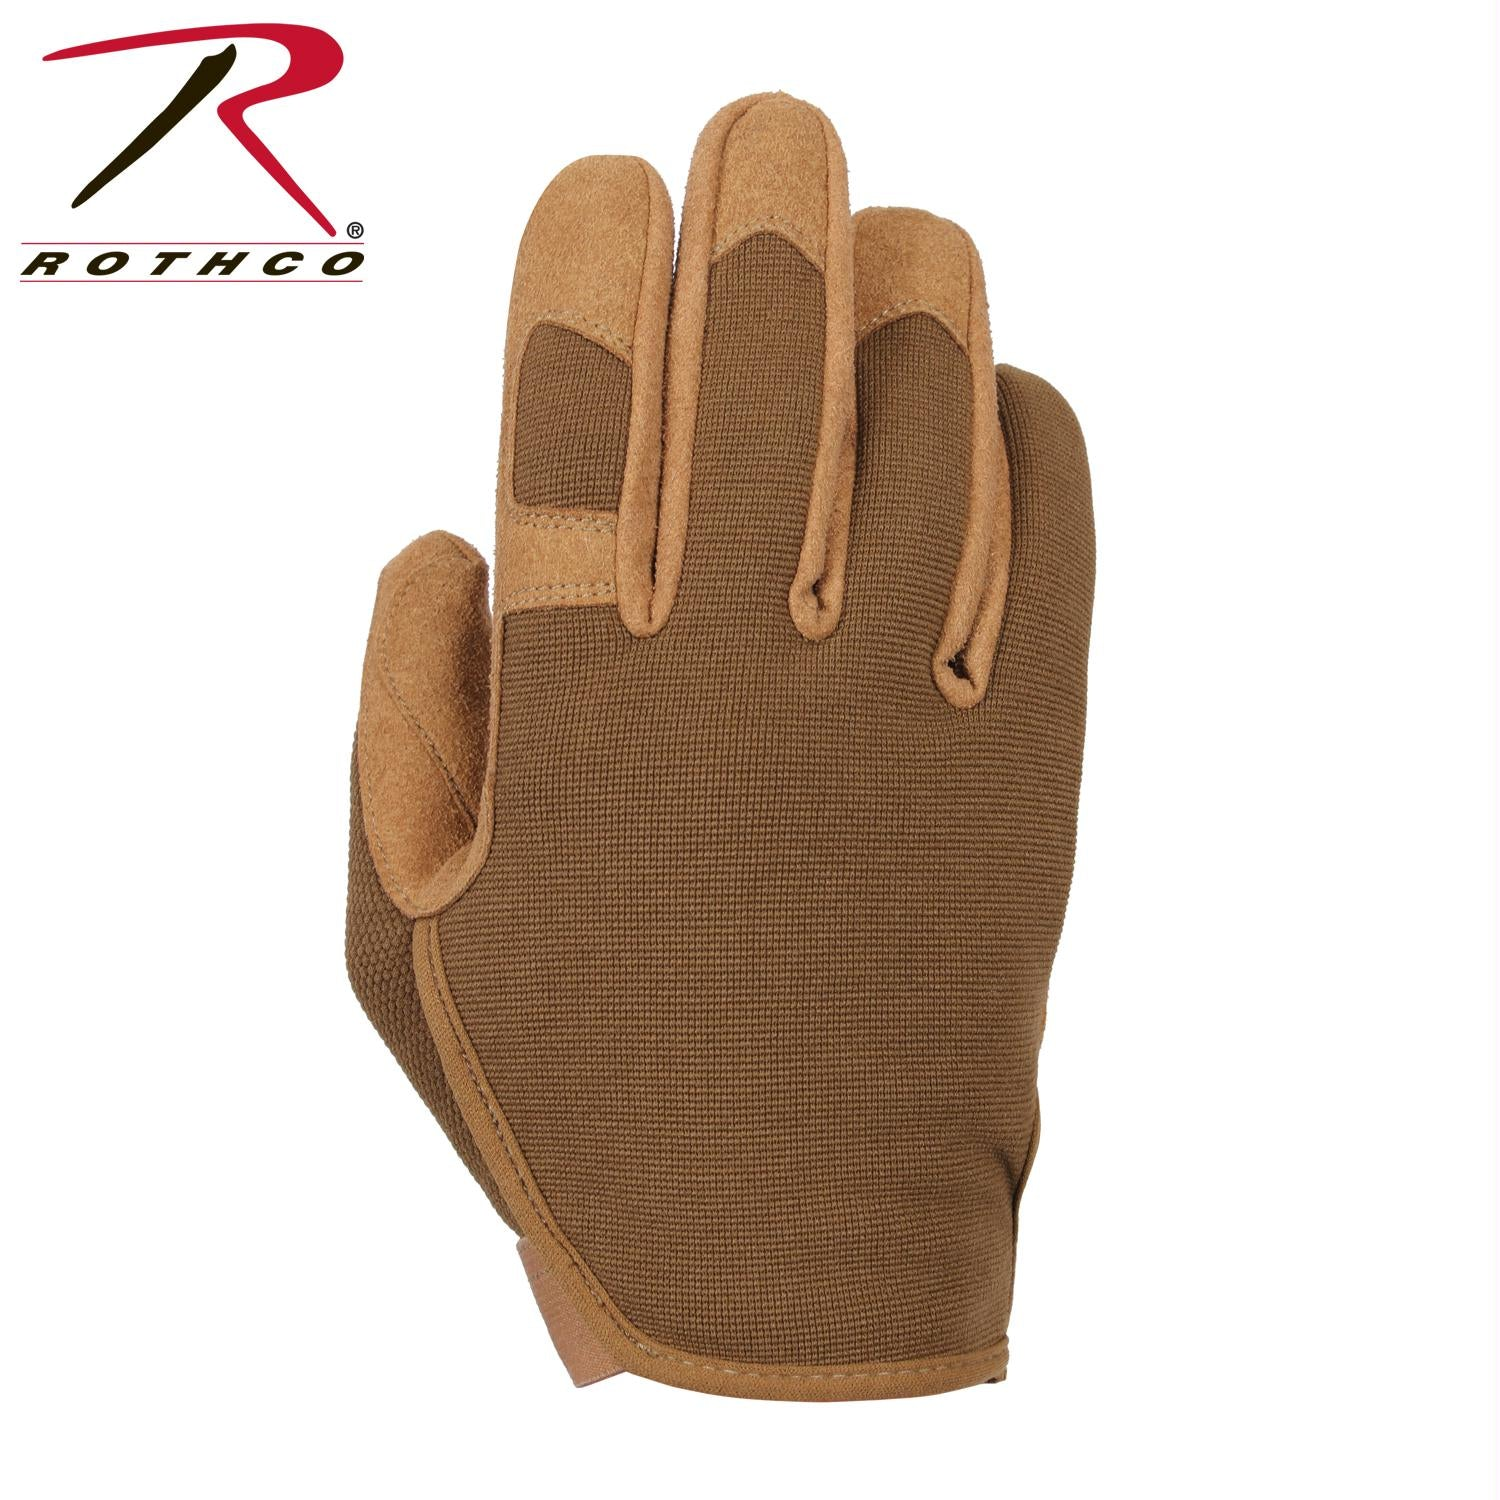 Rothco Ultra-light High Performance Gloves - Coyote Brown / M